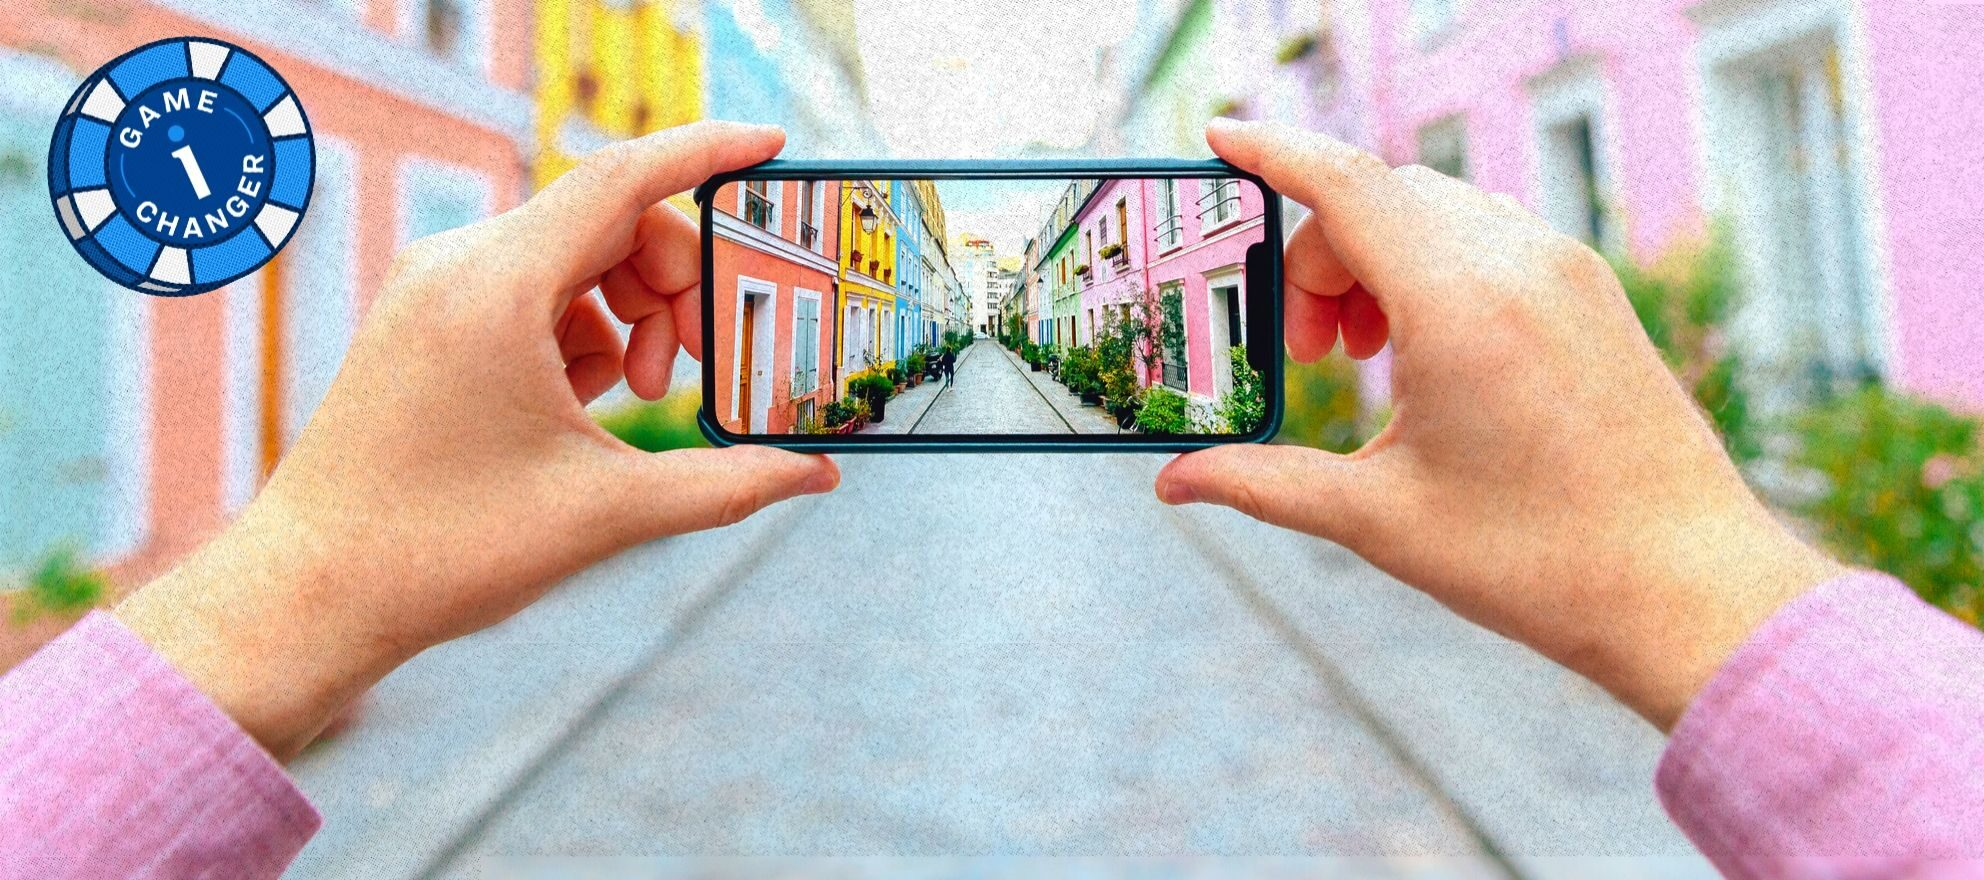 Lead-generation game changer: How 60-second Instagram videos have transformed my business